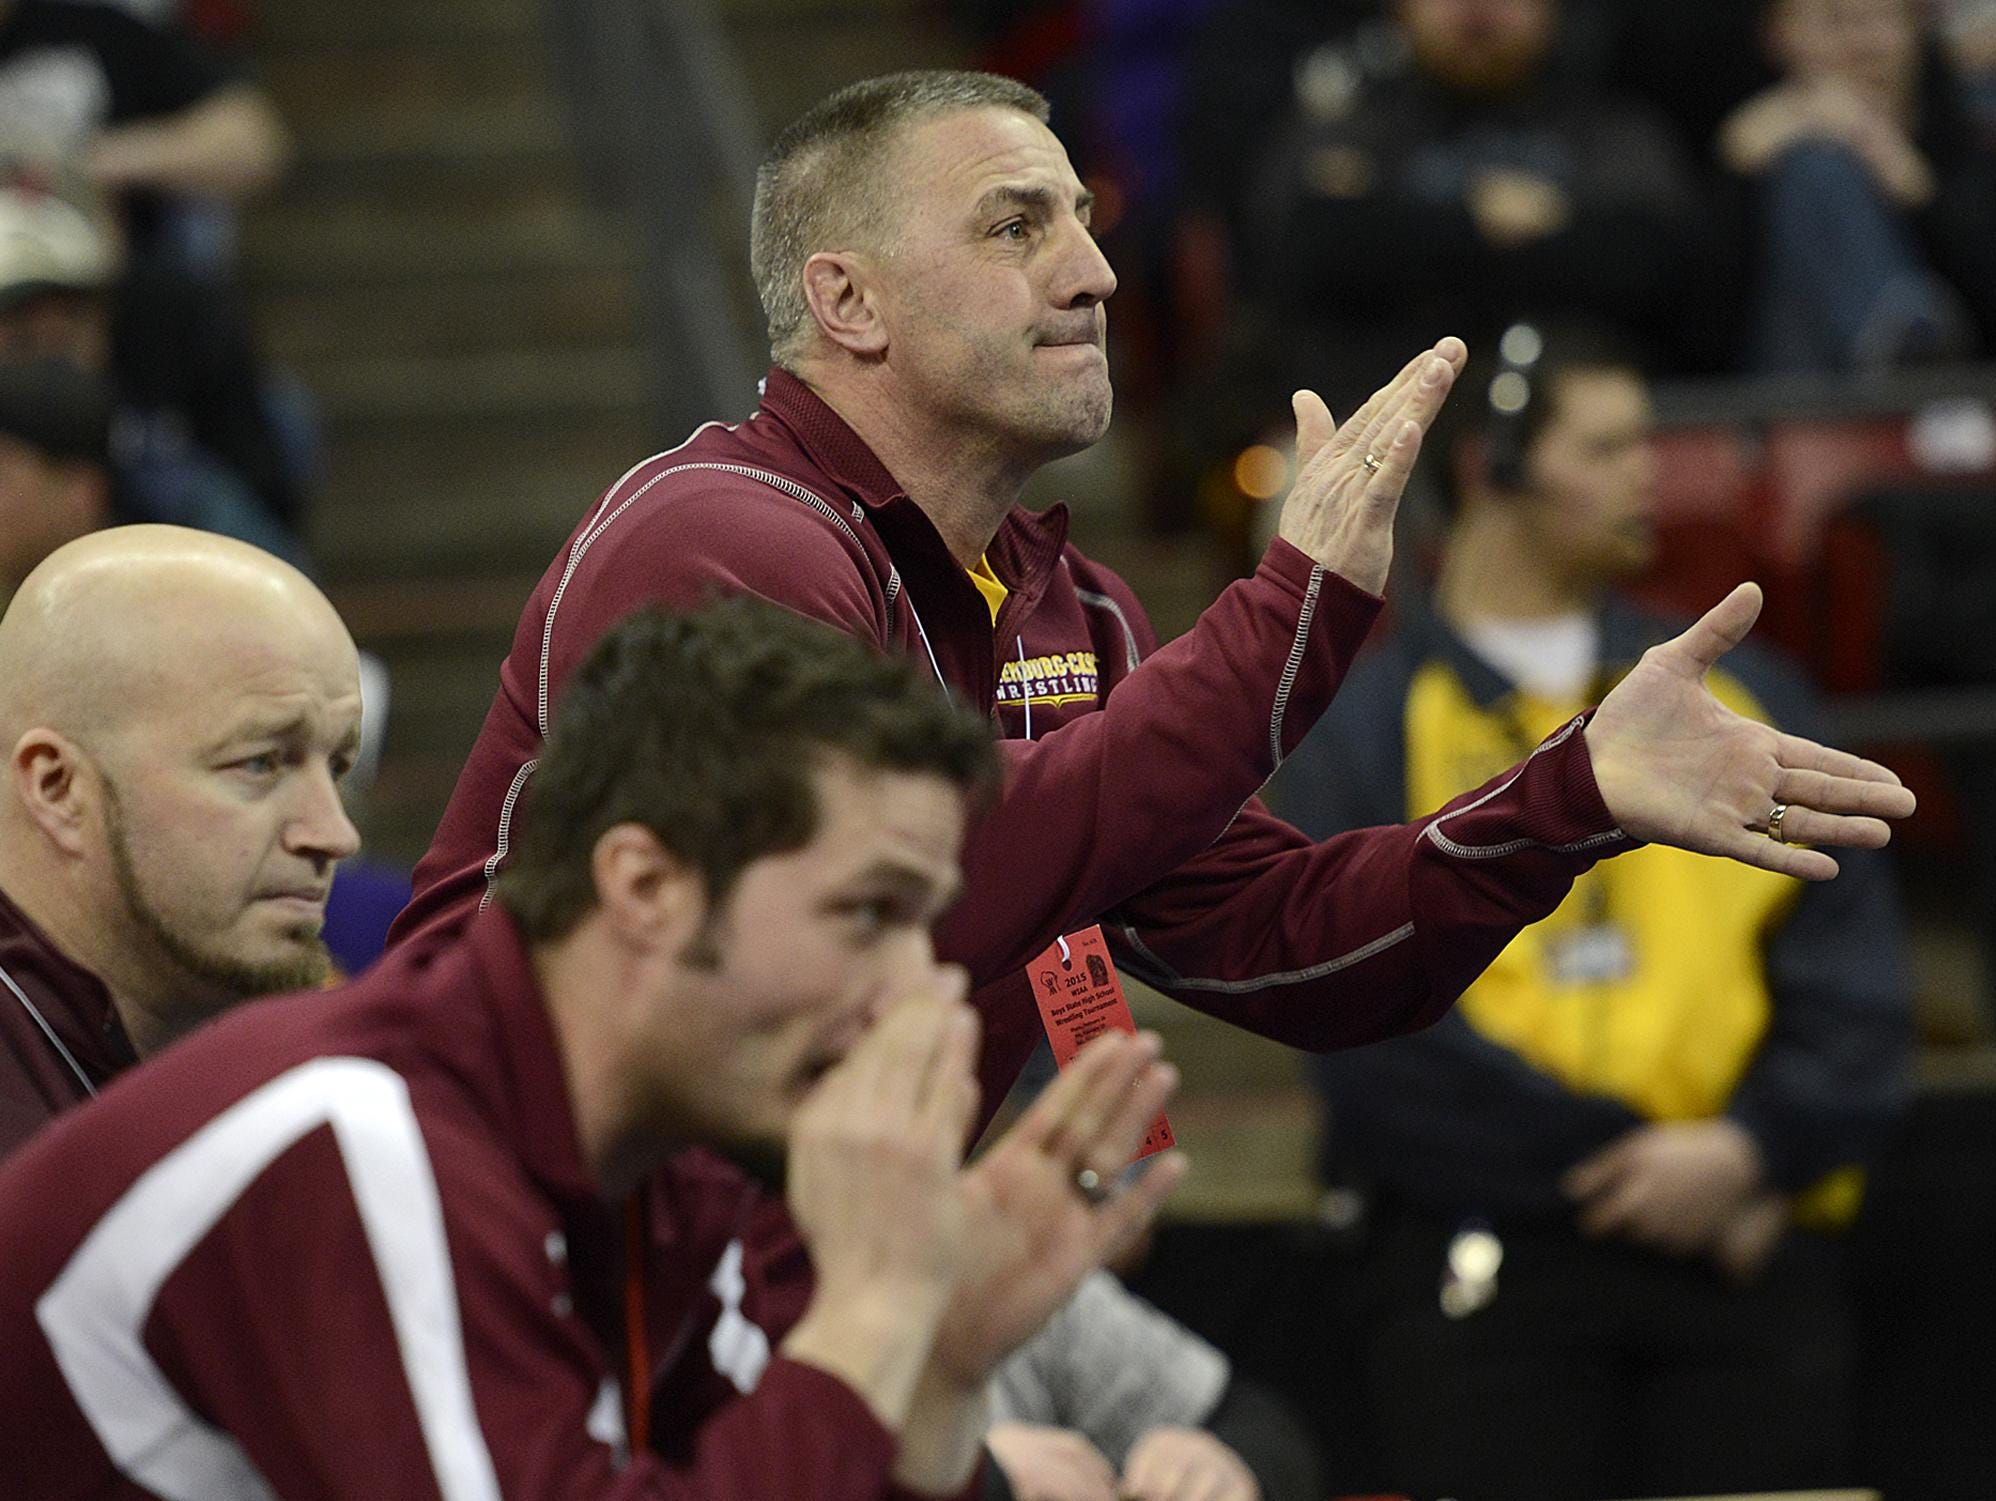 L-C coach Bob Berceau cheers on his son Mason during his match against Cuba City's Josh Donar in their 138-pound Division 2 semifinal at the WIAA individual state wrestling tournament in February.